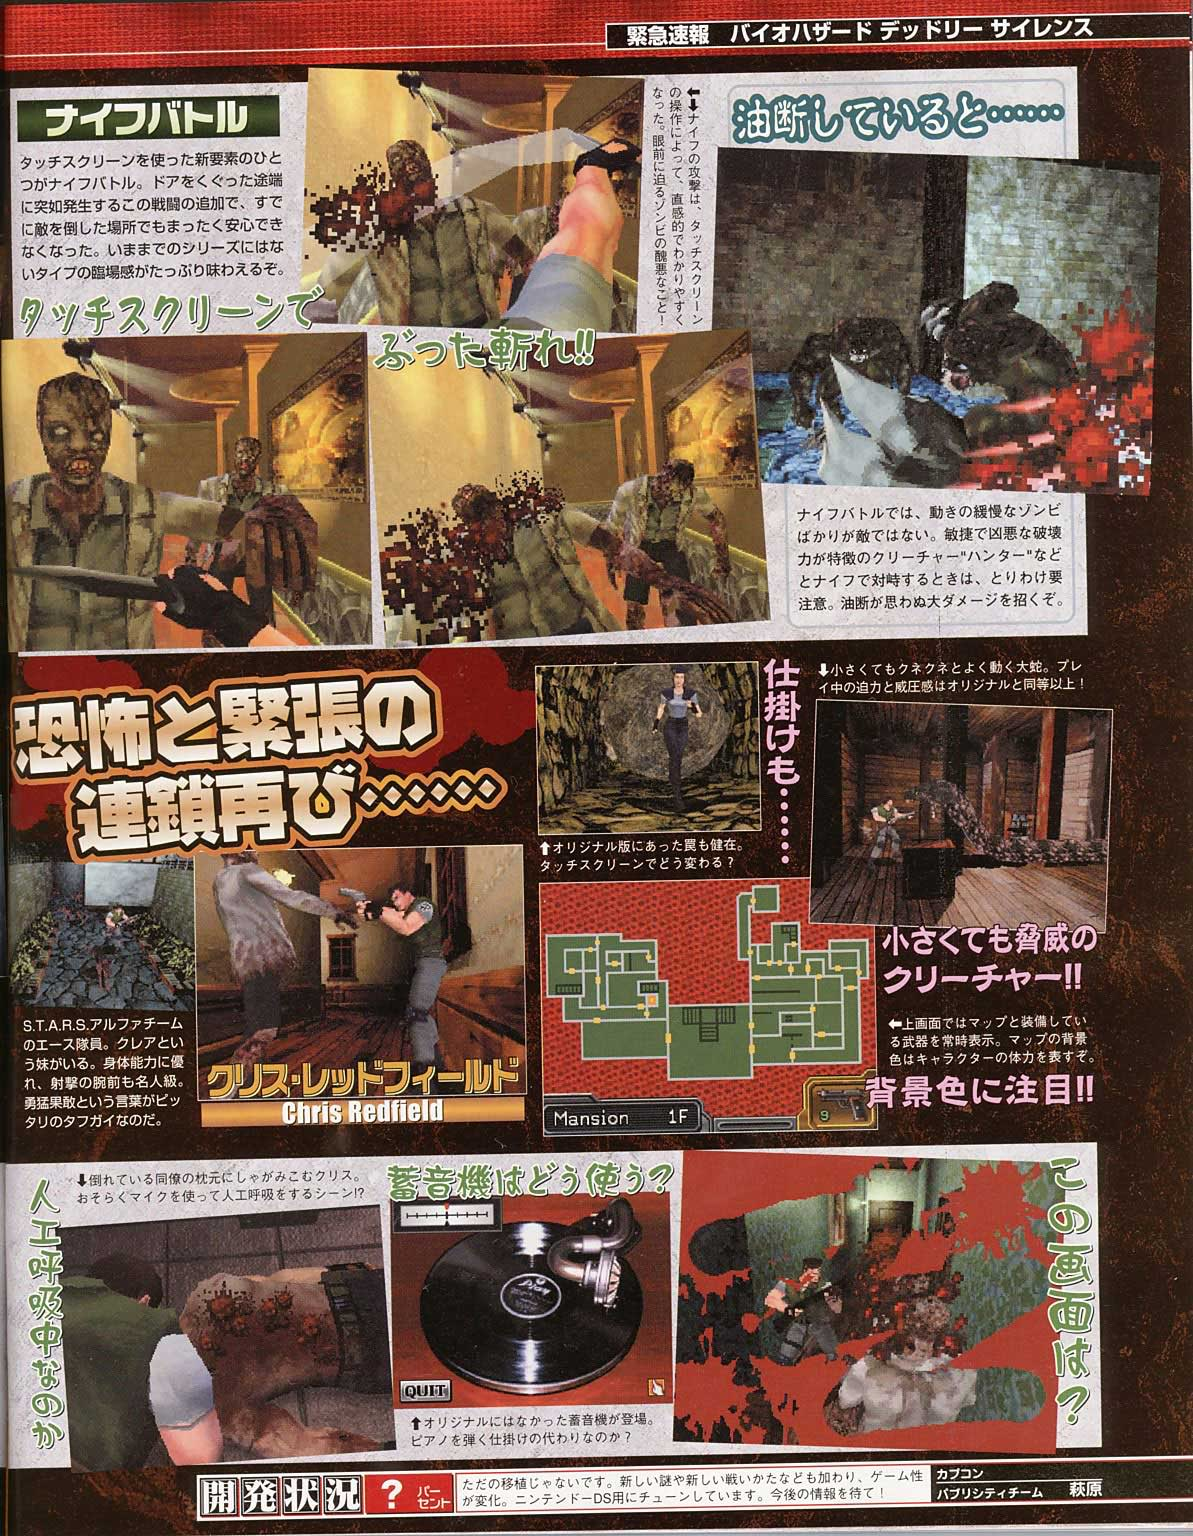 Resident Evil Deadly Silence Nds2-1